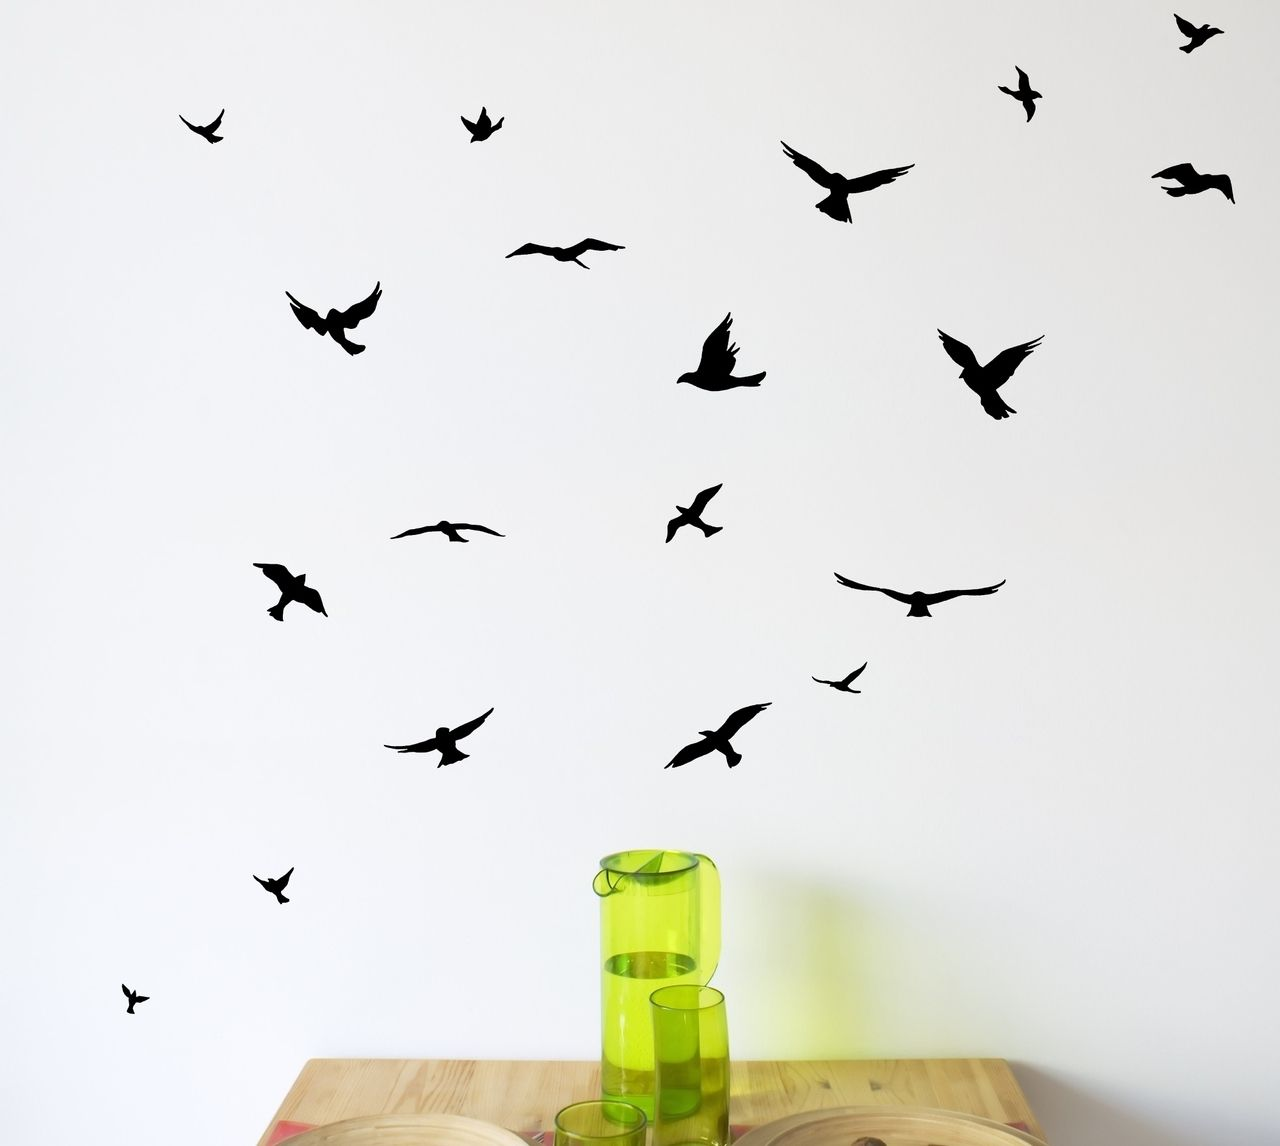 Arise Decals Flock Of Birds Wall Decalhttpwwwarisedecals - Diy wall decor birds